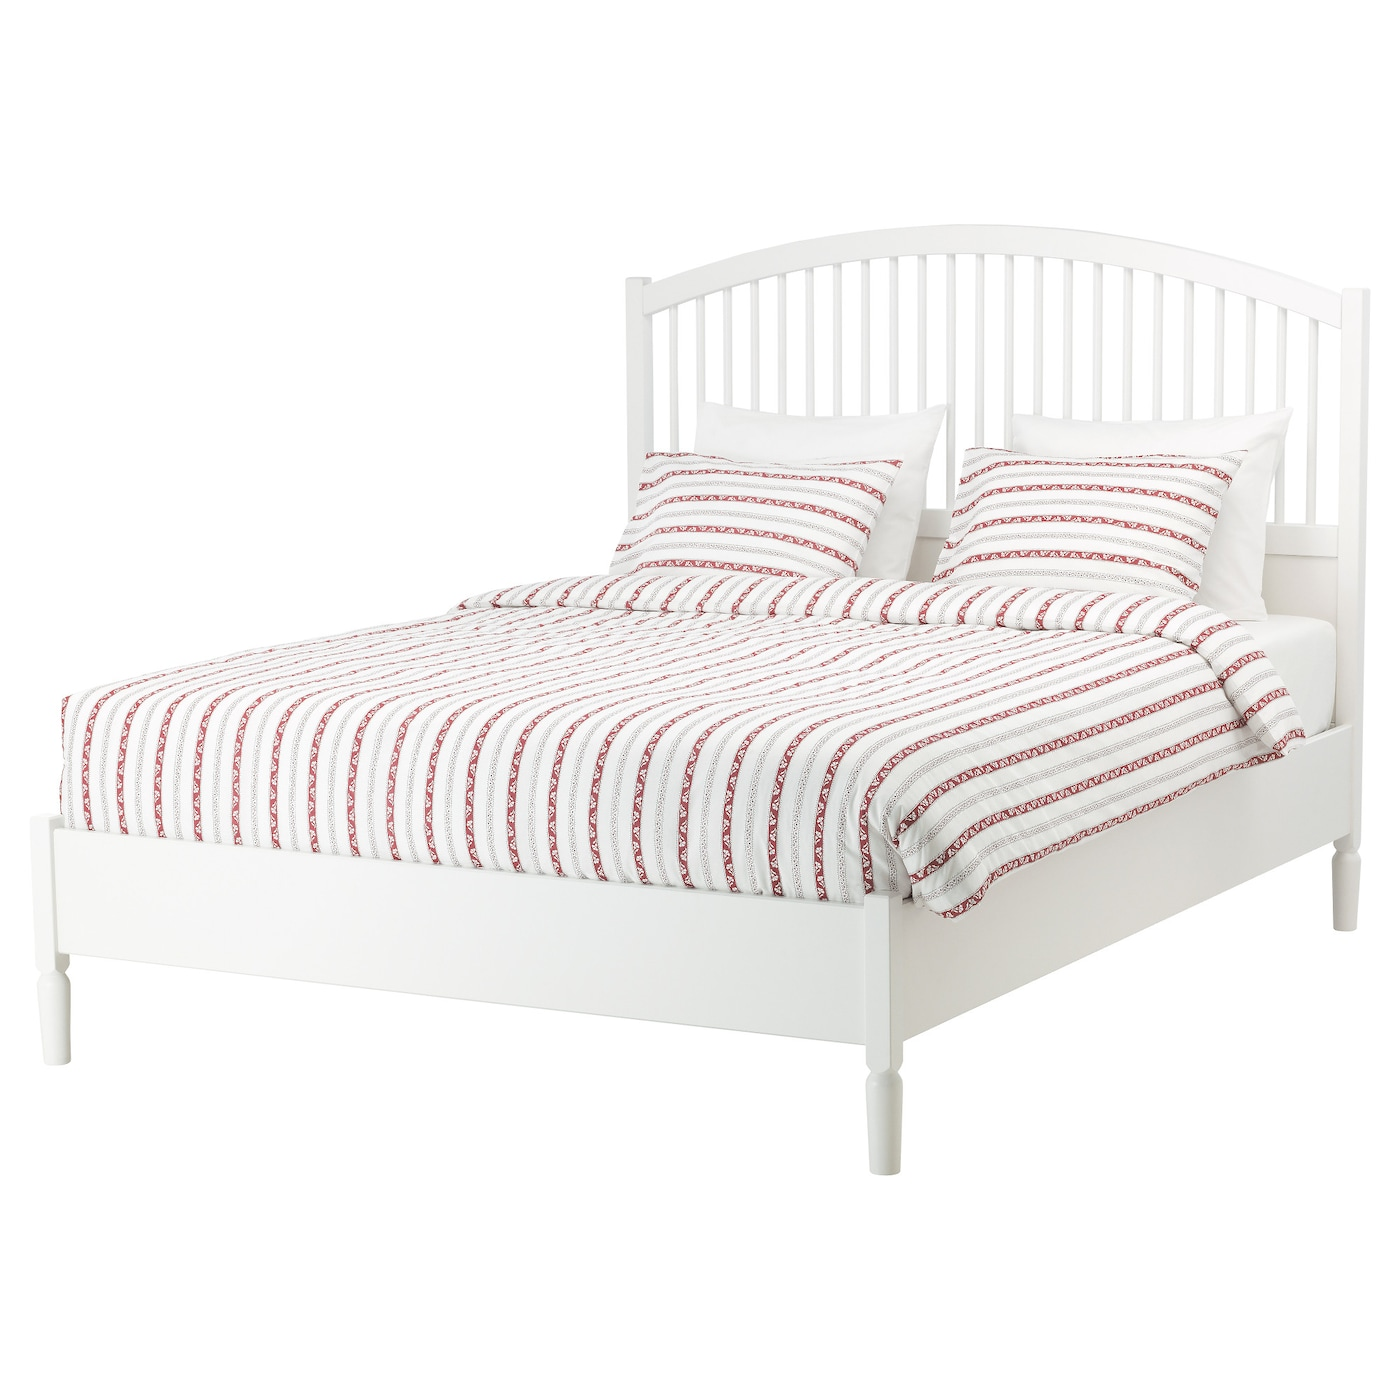 Tyssedal bed frame white leirsund standard king ikea for Ikea mattress frame